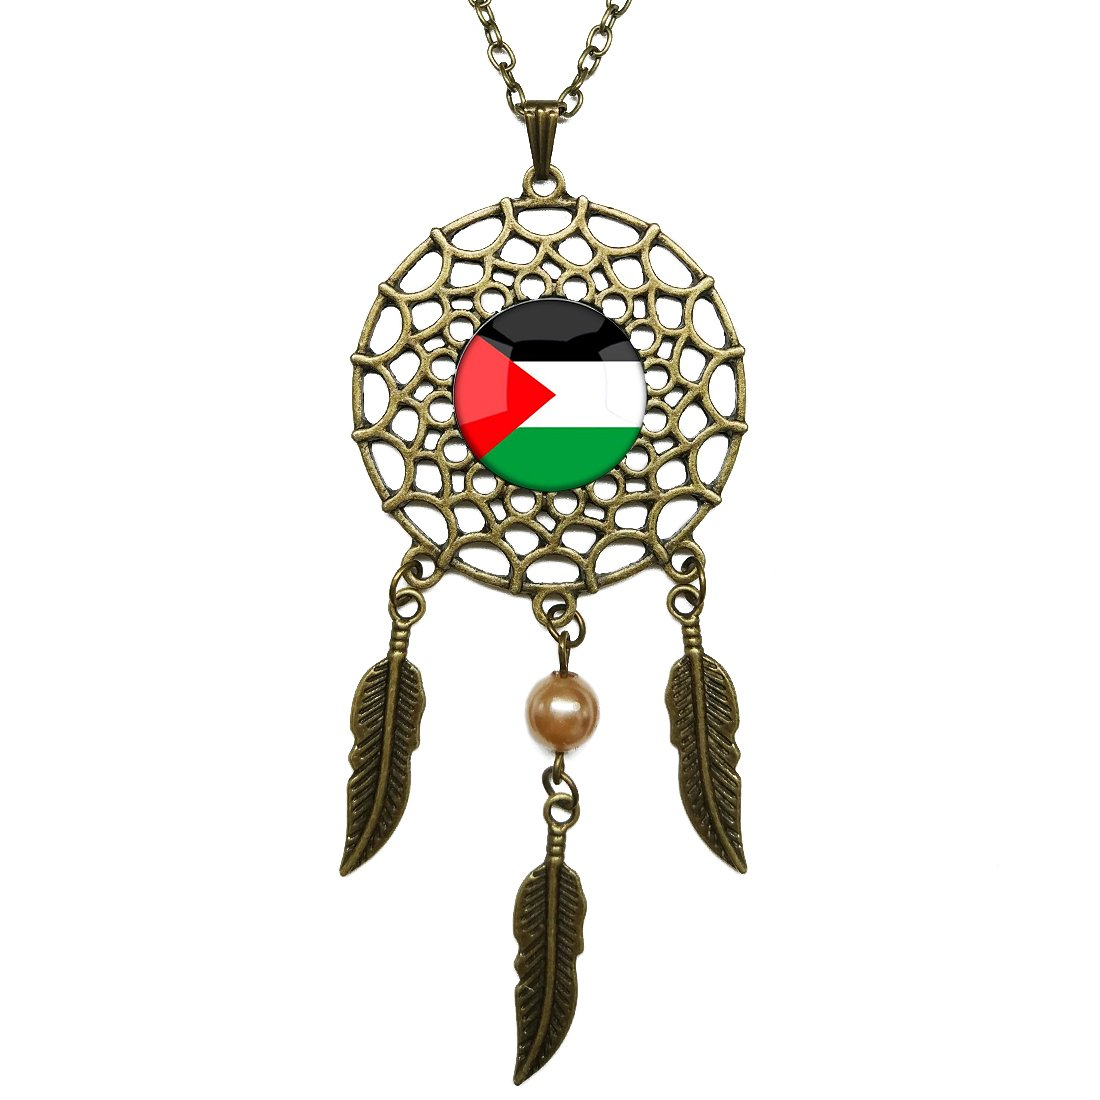 Dreamcatcher Pendant The Hashemite Kingdom of Jordan National Flag Bronze Chain Long Necklace Jewelry Dangling Feather Charms Glass Inlaid